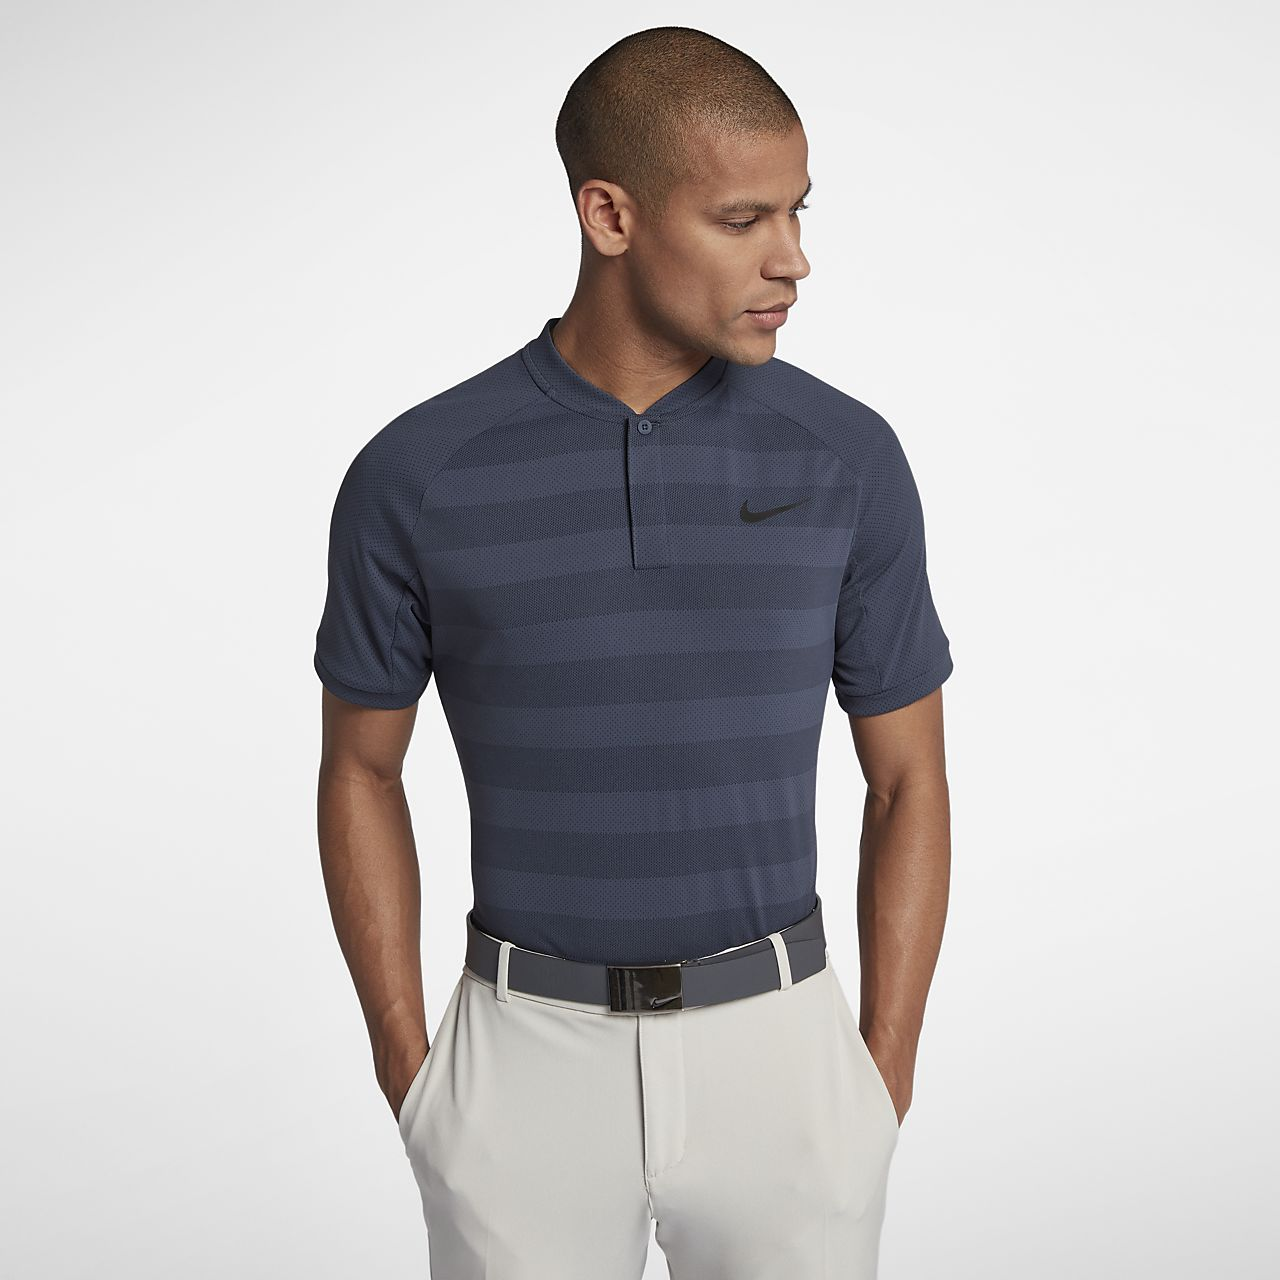 ... Nike Zonal Cooling Momentum Men's Slim-Fit Golf Polo